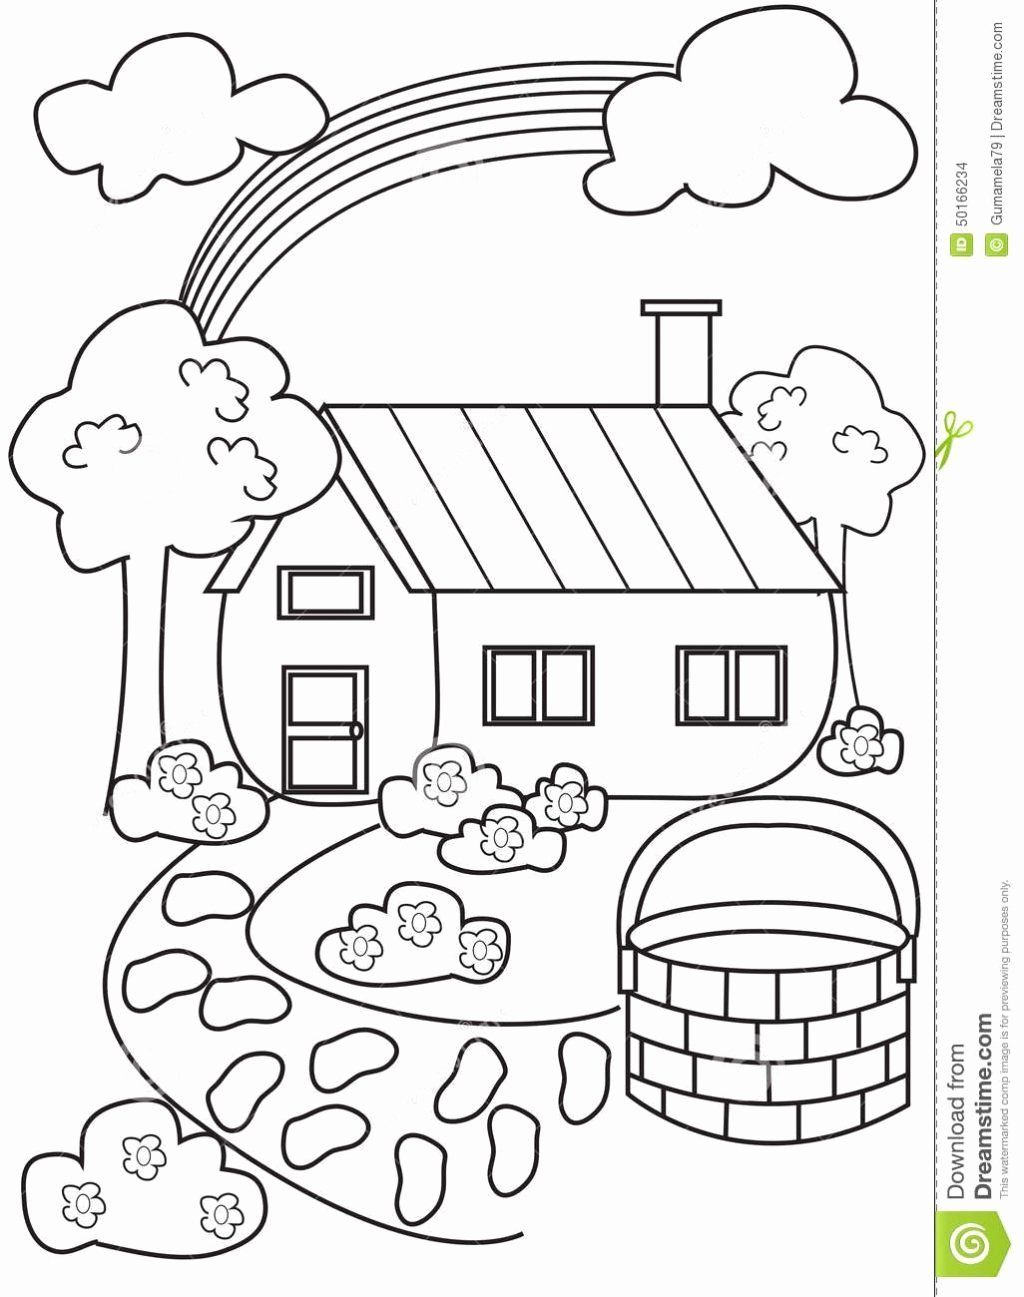 Coloring Book Pages Zoo Animals Elegant Coloring Pages